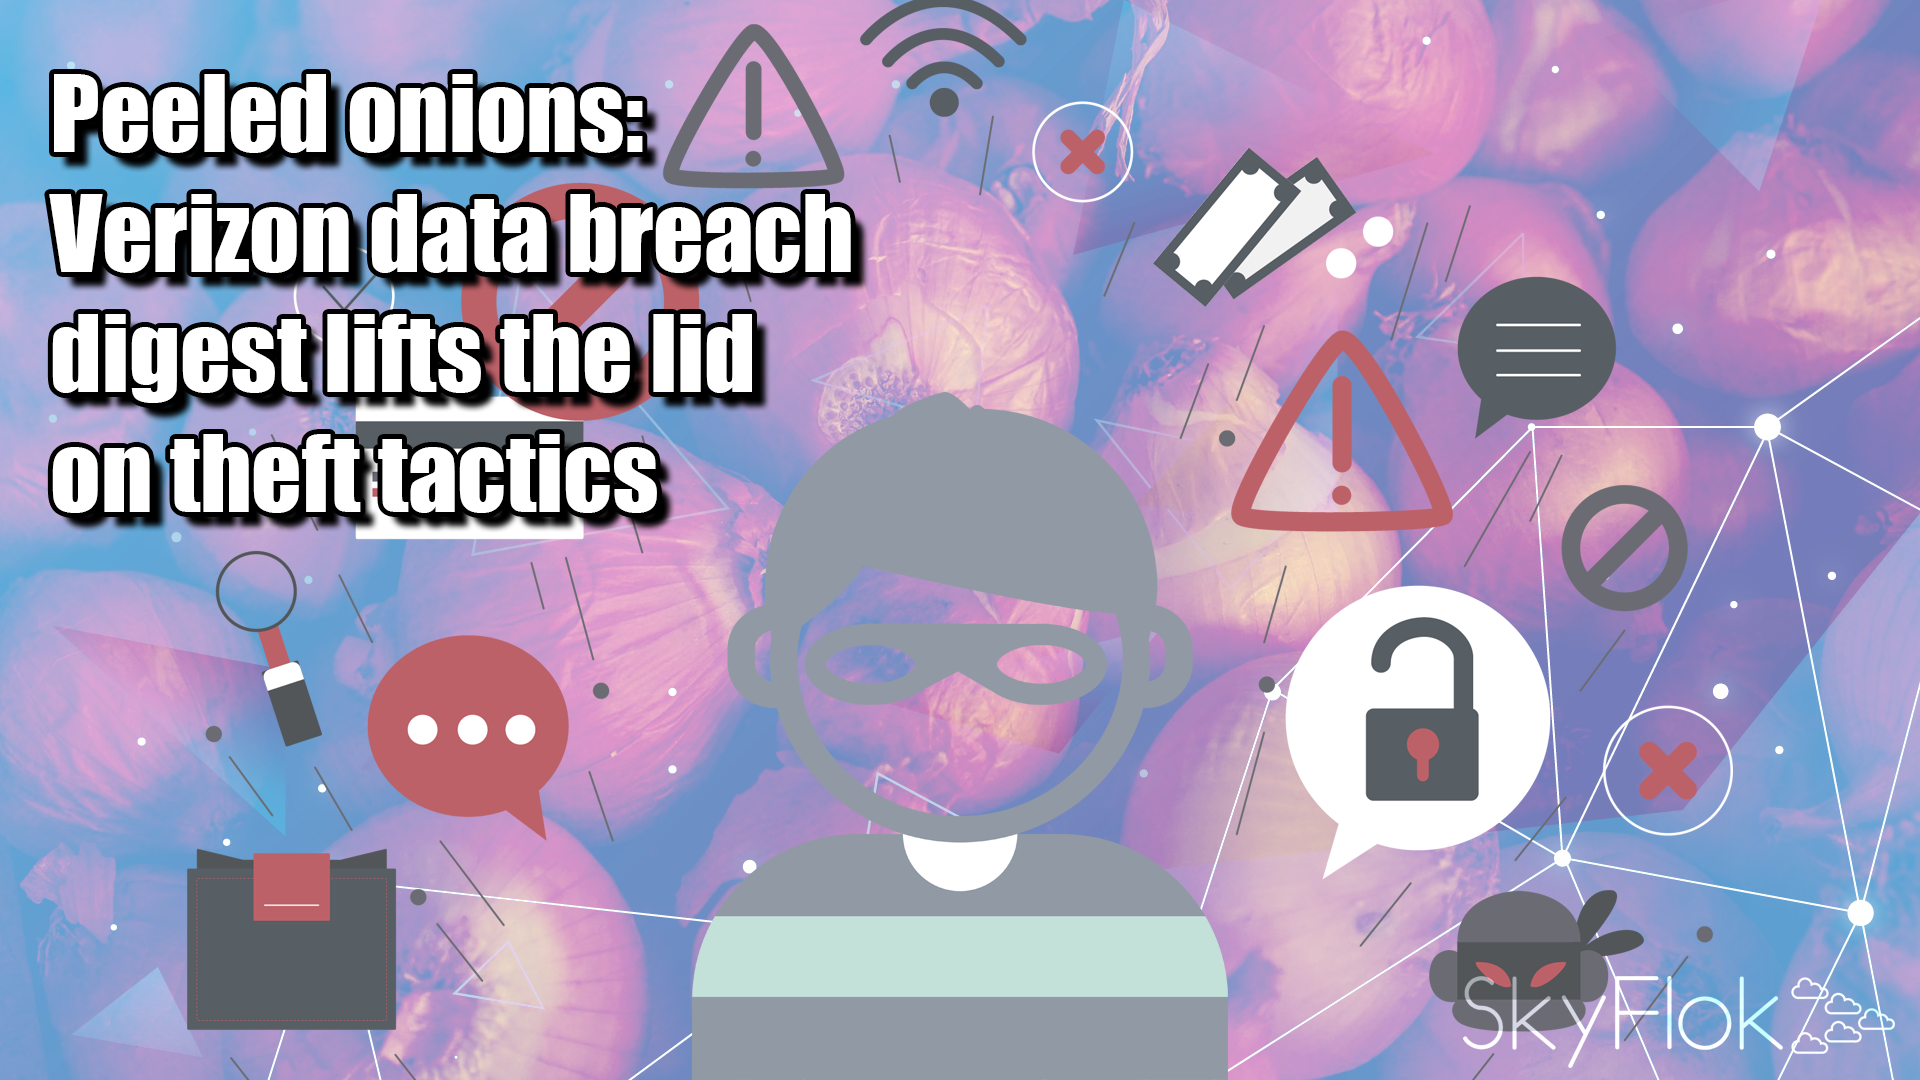 Peeled onions and a Minus Touch: Verizon data breach digest lifts the lid on theft tactics